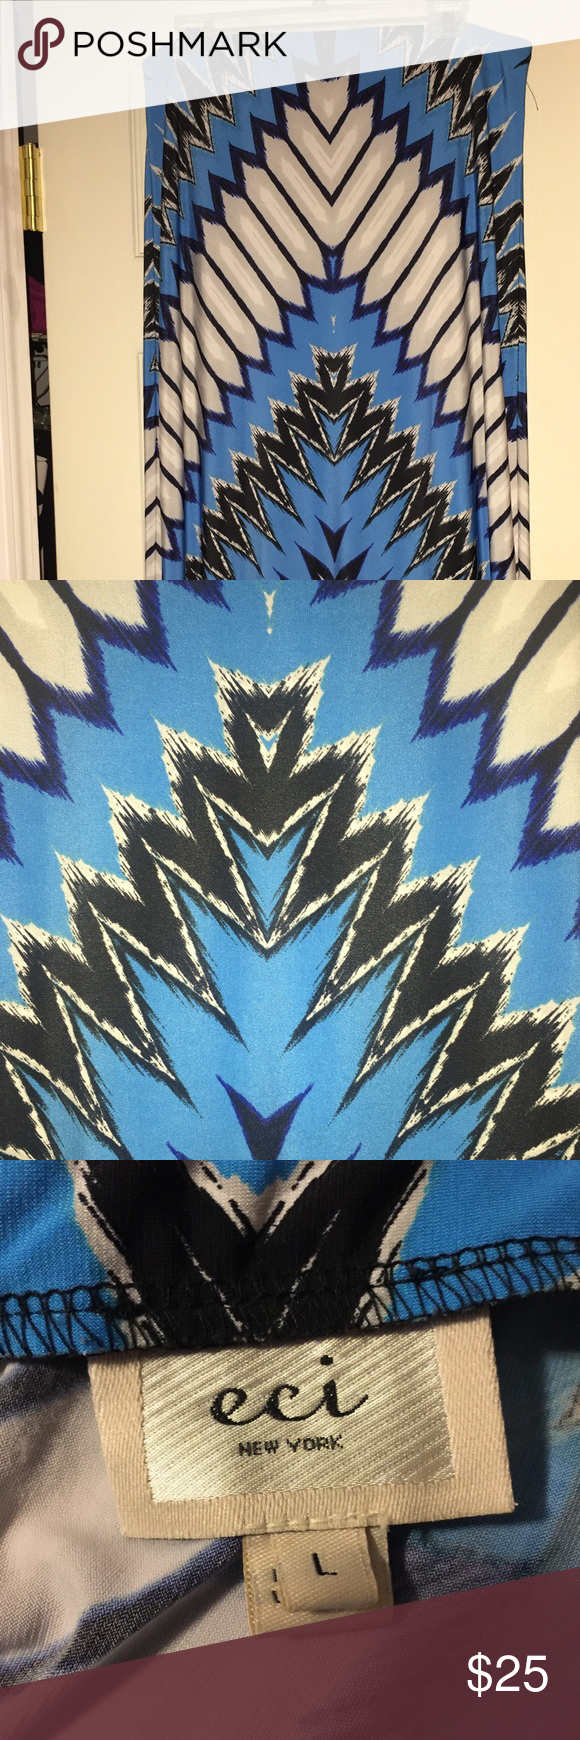 Maxi skirt Abstract print blue, white, gray, and black maxi skirt. Great easy fabric. Hardly wrinkles. Wear it anywhere. ECI Skirts Maxi